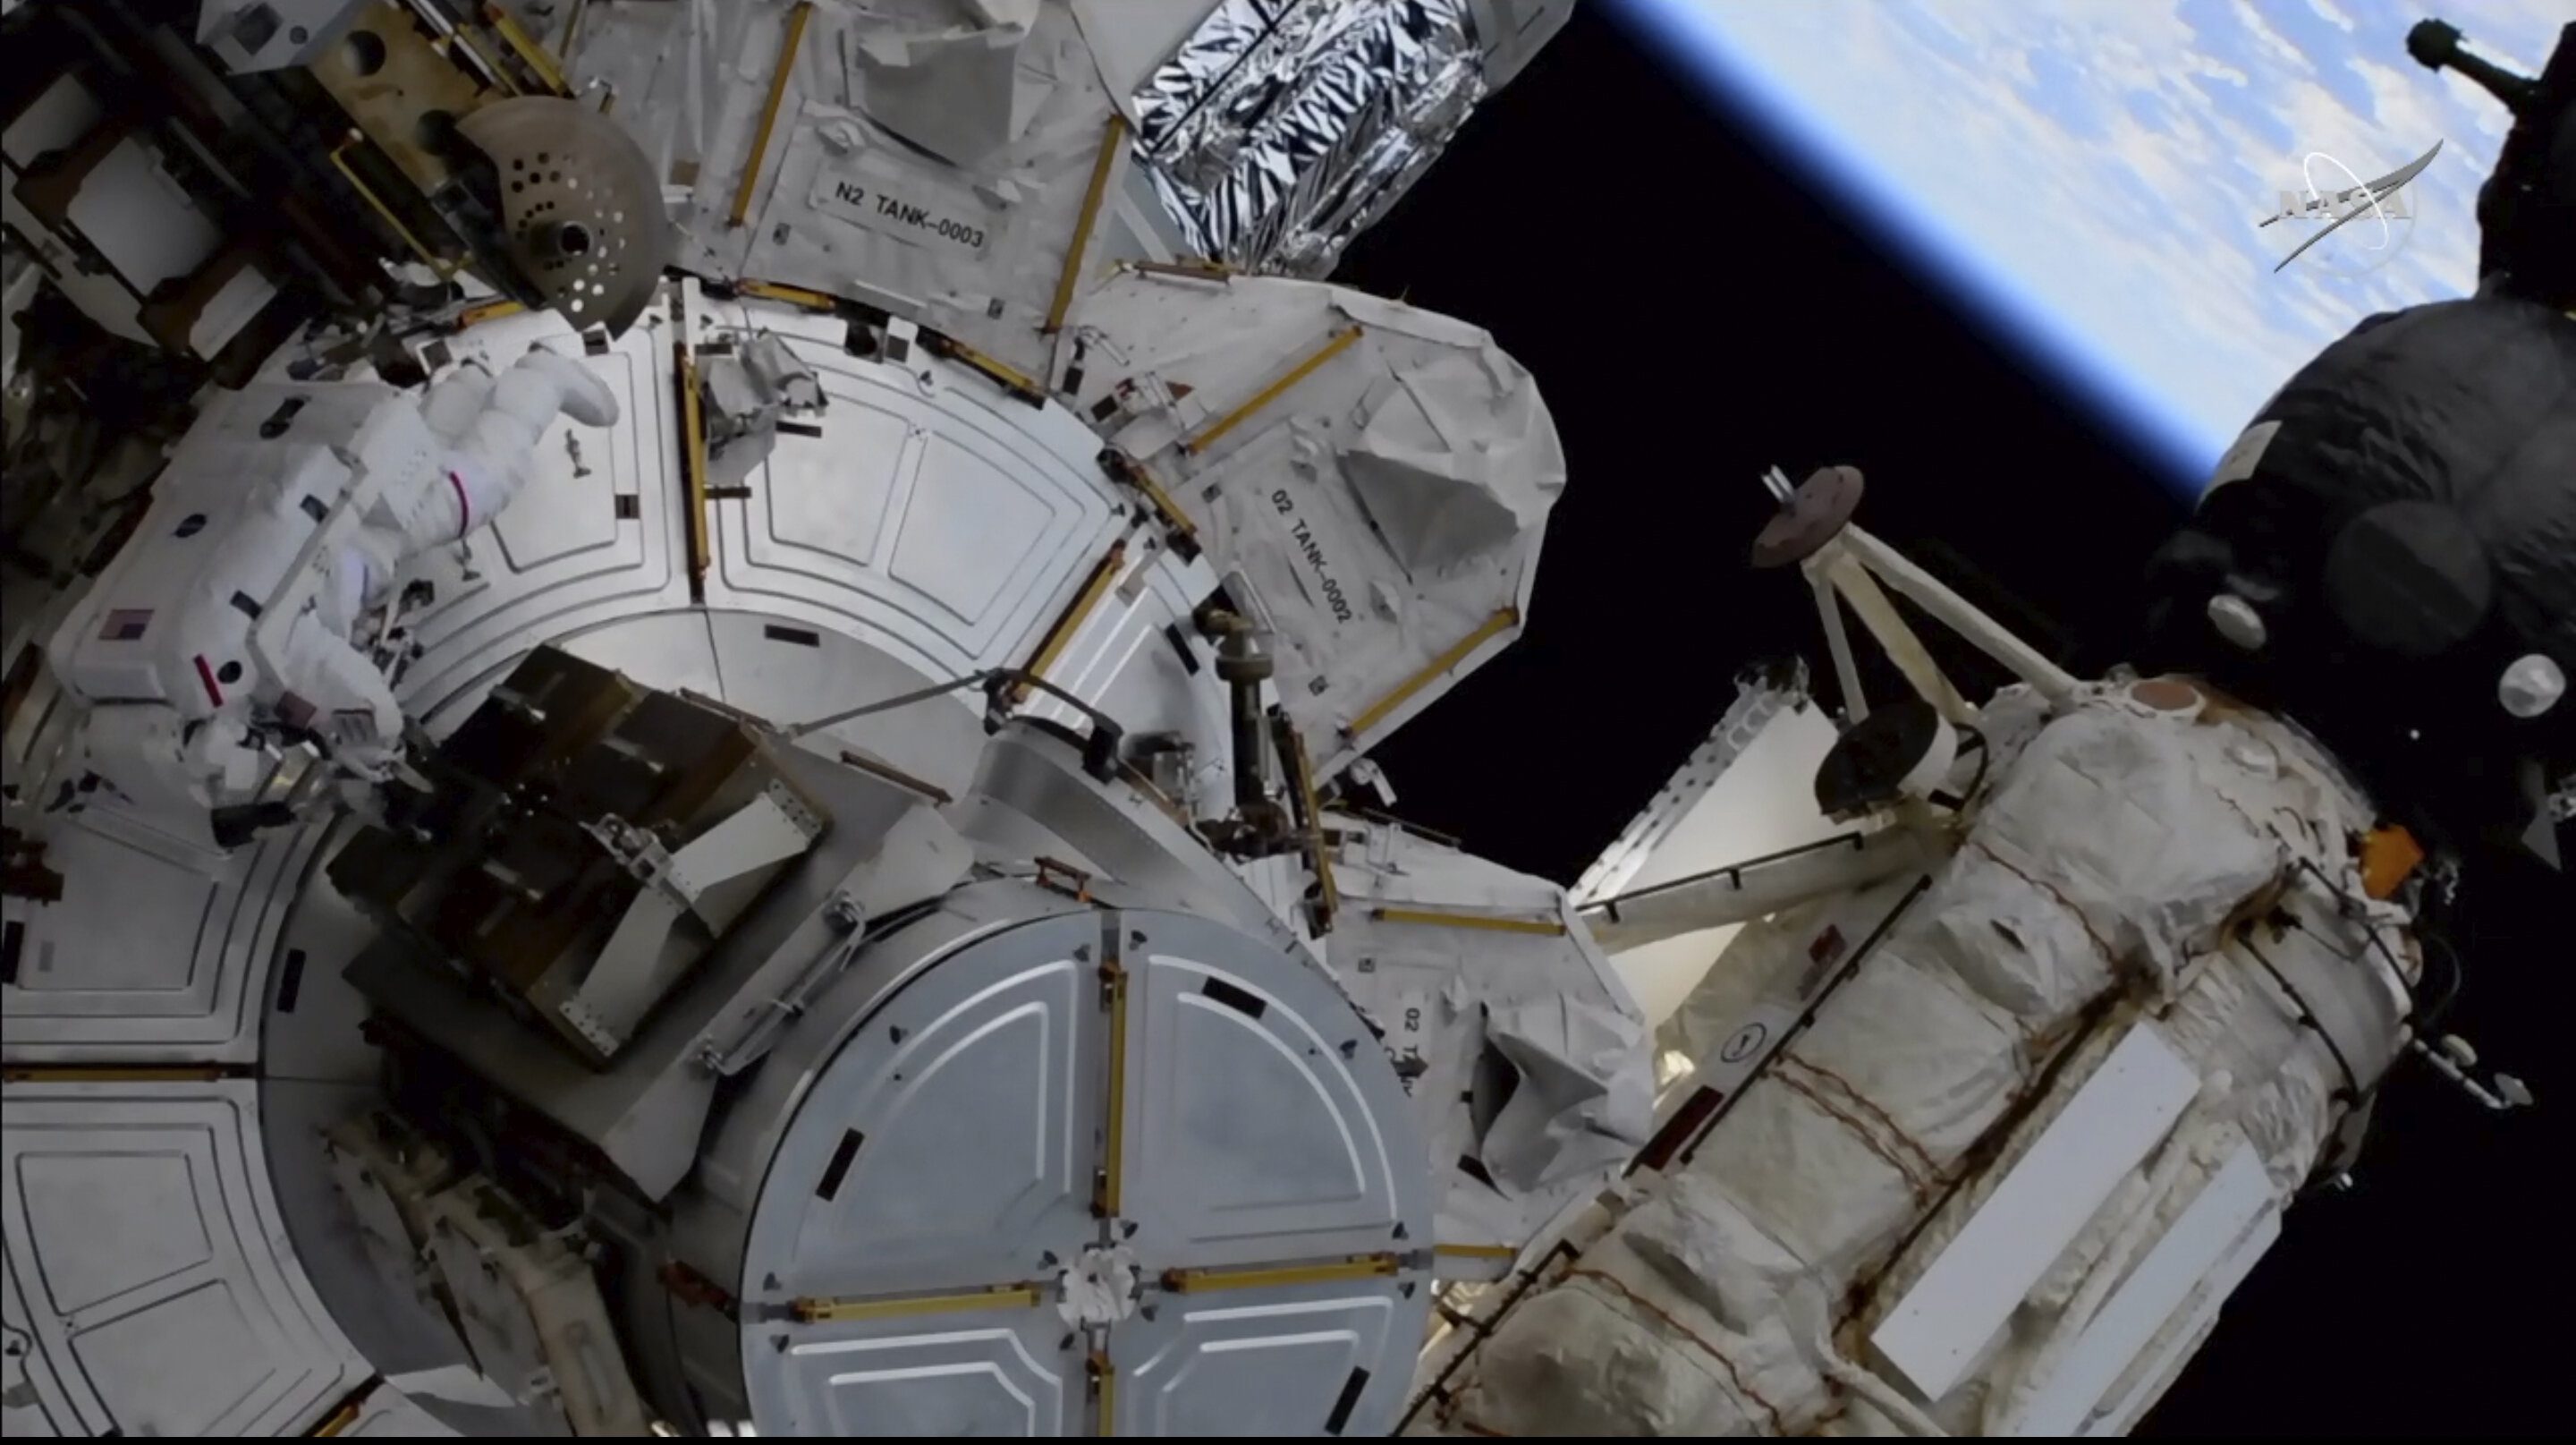 Space astronauts are handling more solar panel previous work